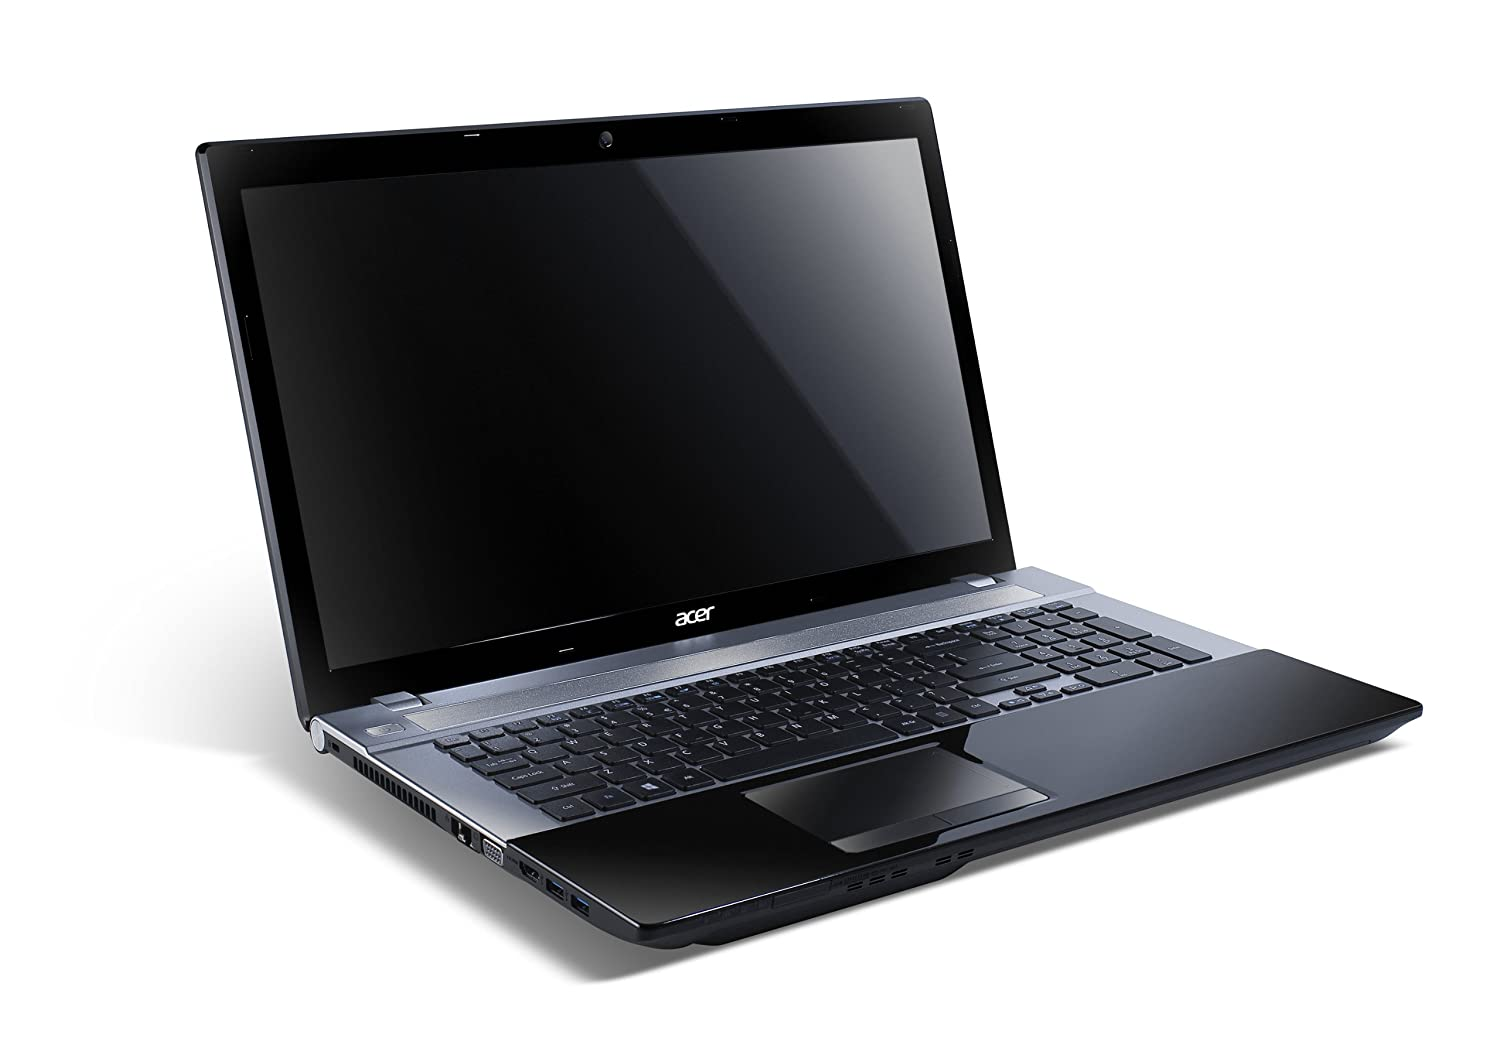 Acer aspire v3 731 notebooklaptop pc series driver update and drivers installation dvd disk